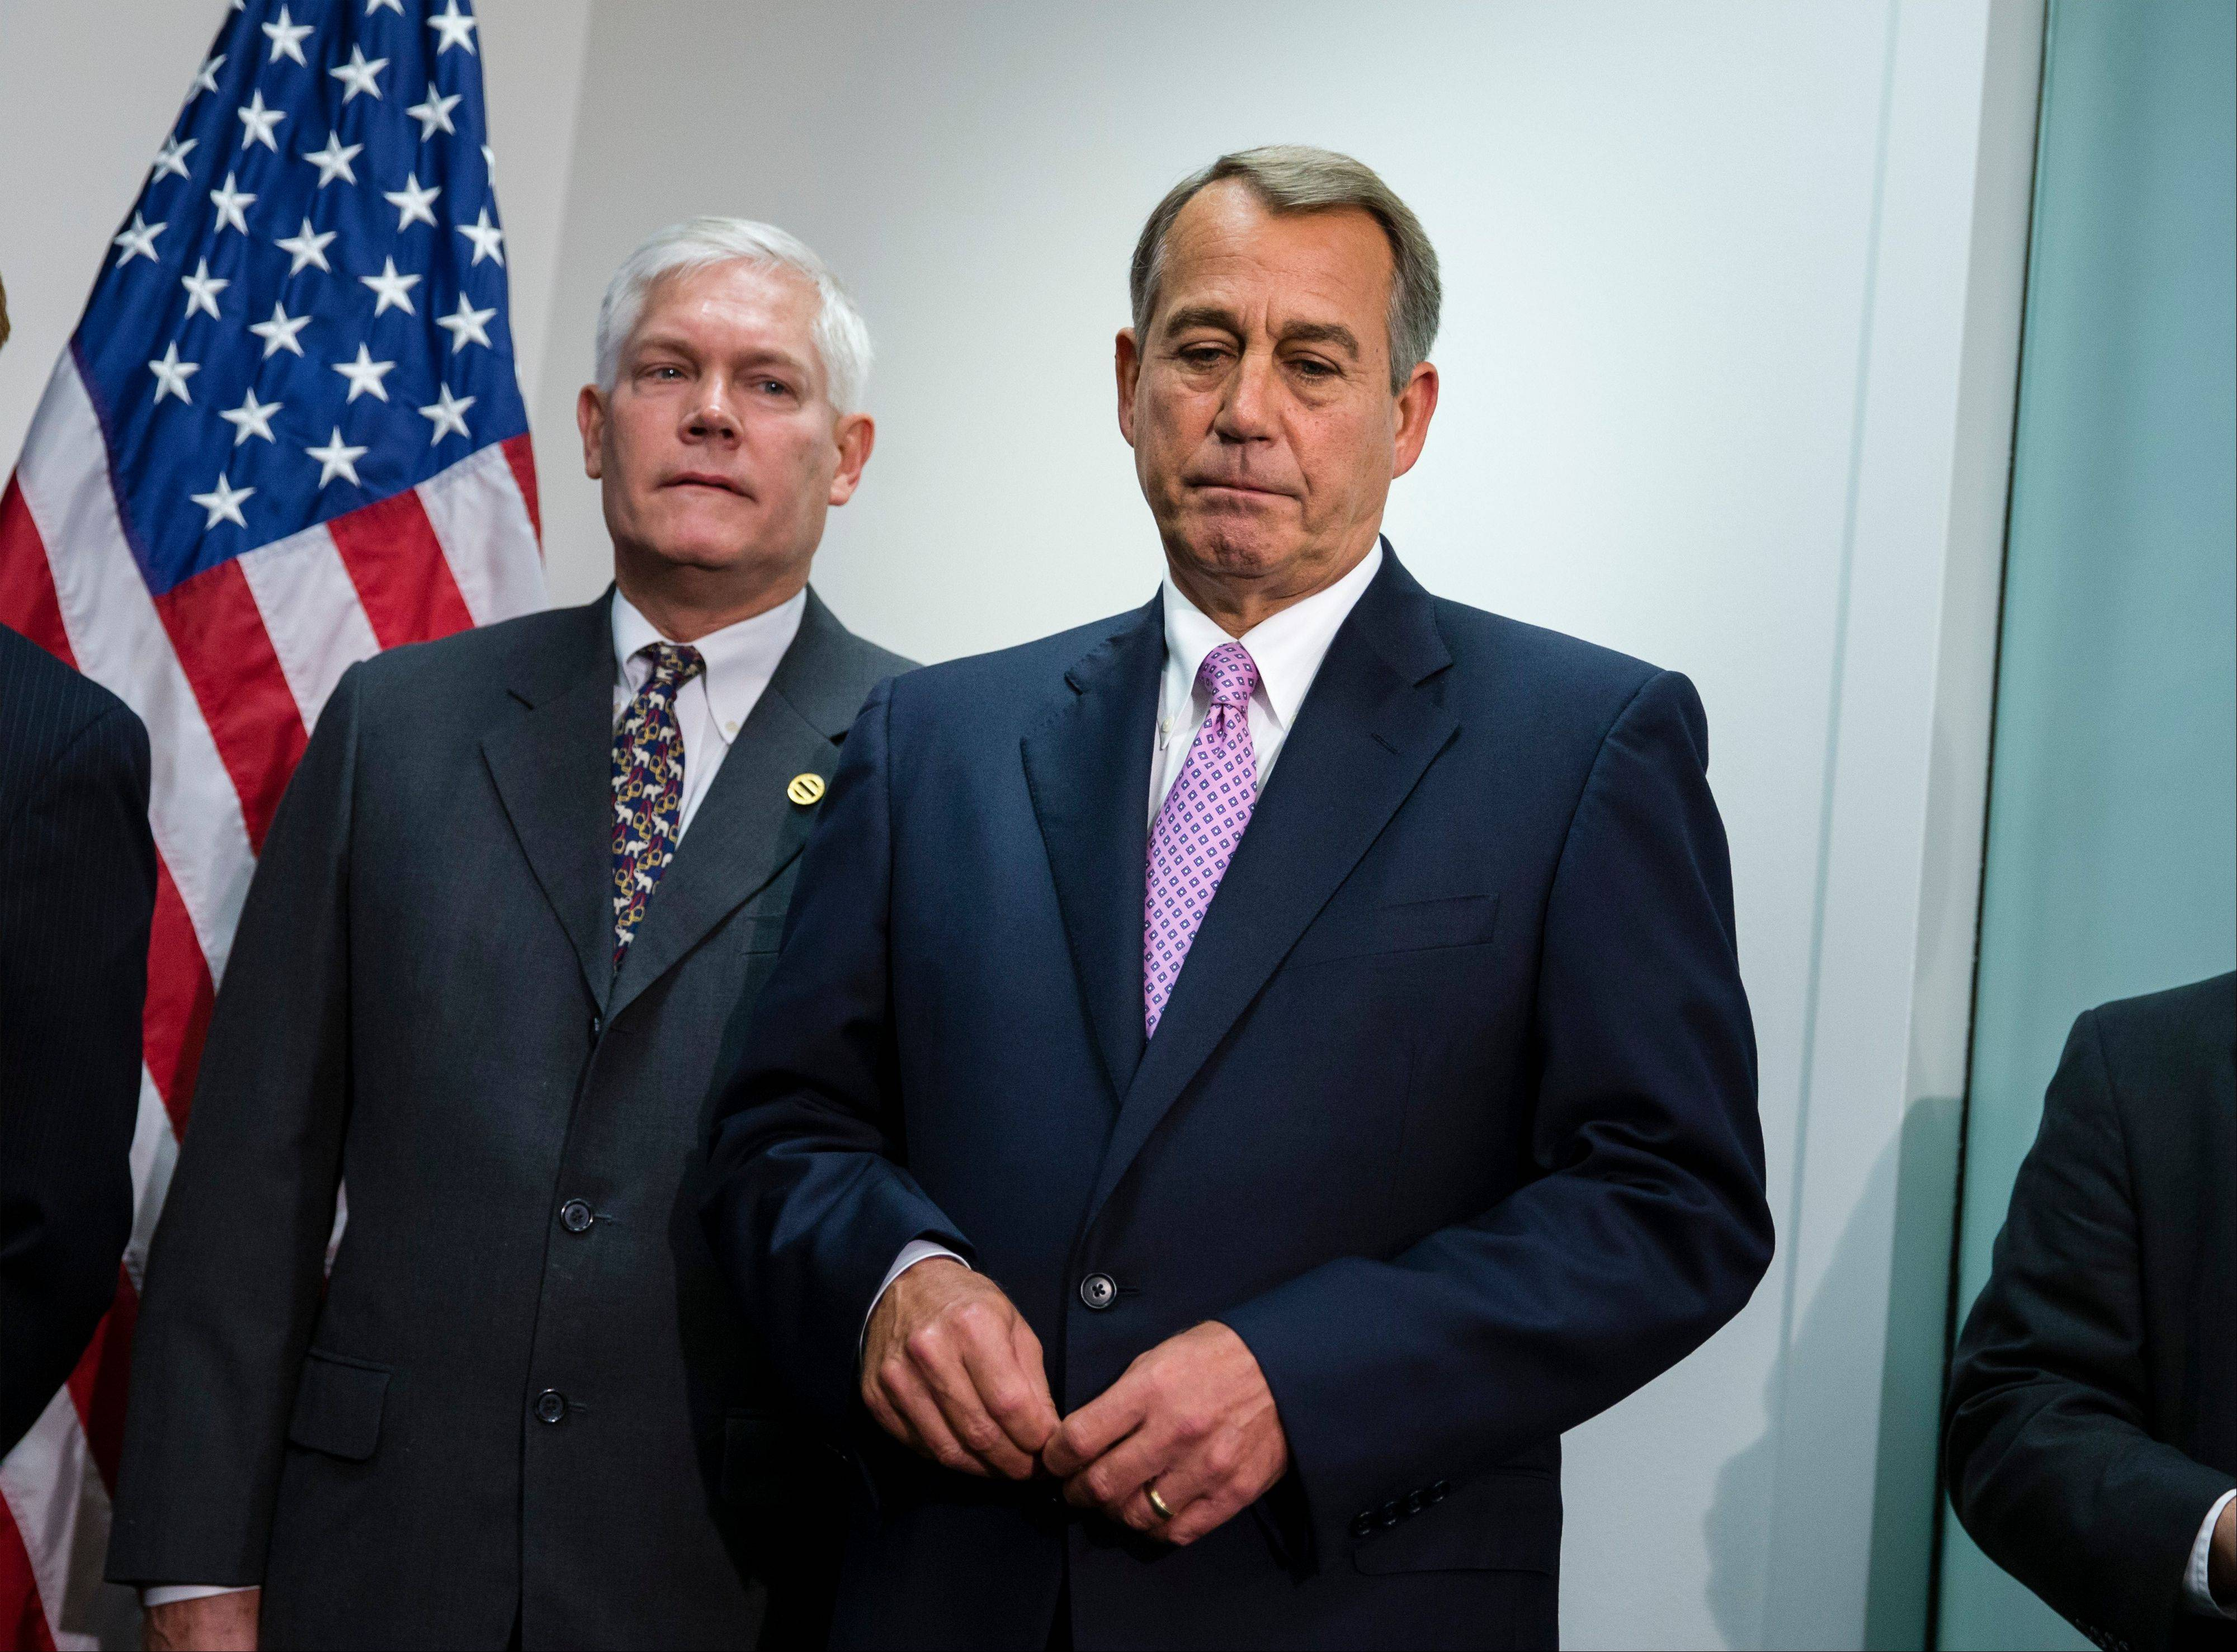 In this Oct. 4, 2013 file photo, Speaker of the House John Boehner, R-Ohio, is joined by Rep. Pete Sessions, R-Texas, left, during a news conference at the Capitol. People hoping for a better-functioning government can�t decide whether to cheer or lament Congress� bipartisan budget bill. Legislative leaders call a breakthrough even as they acknowledge it does little.